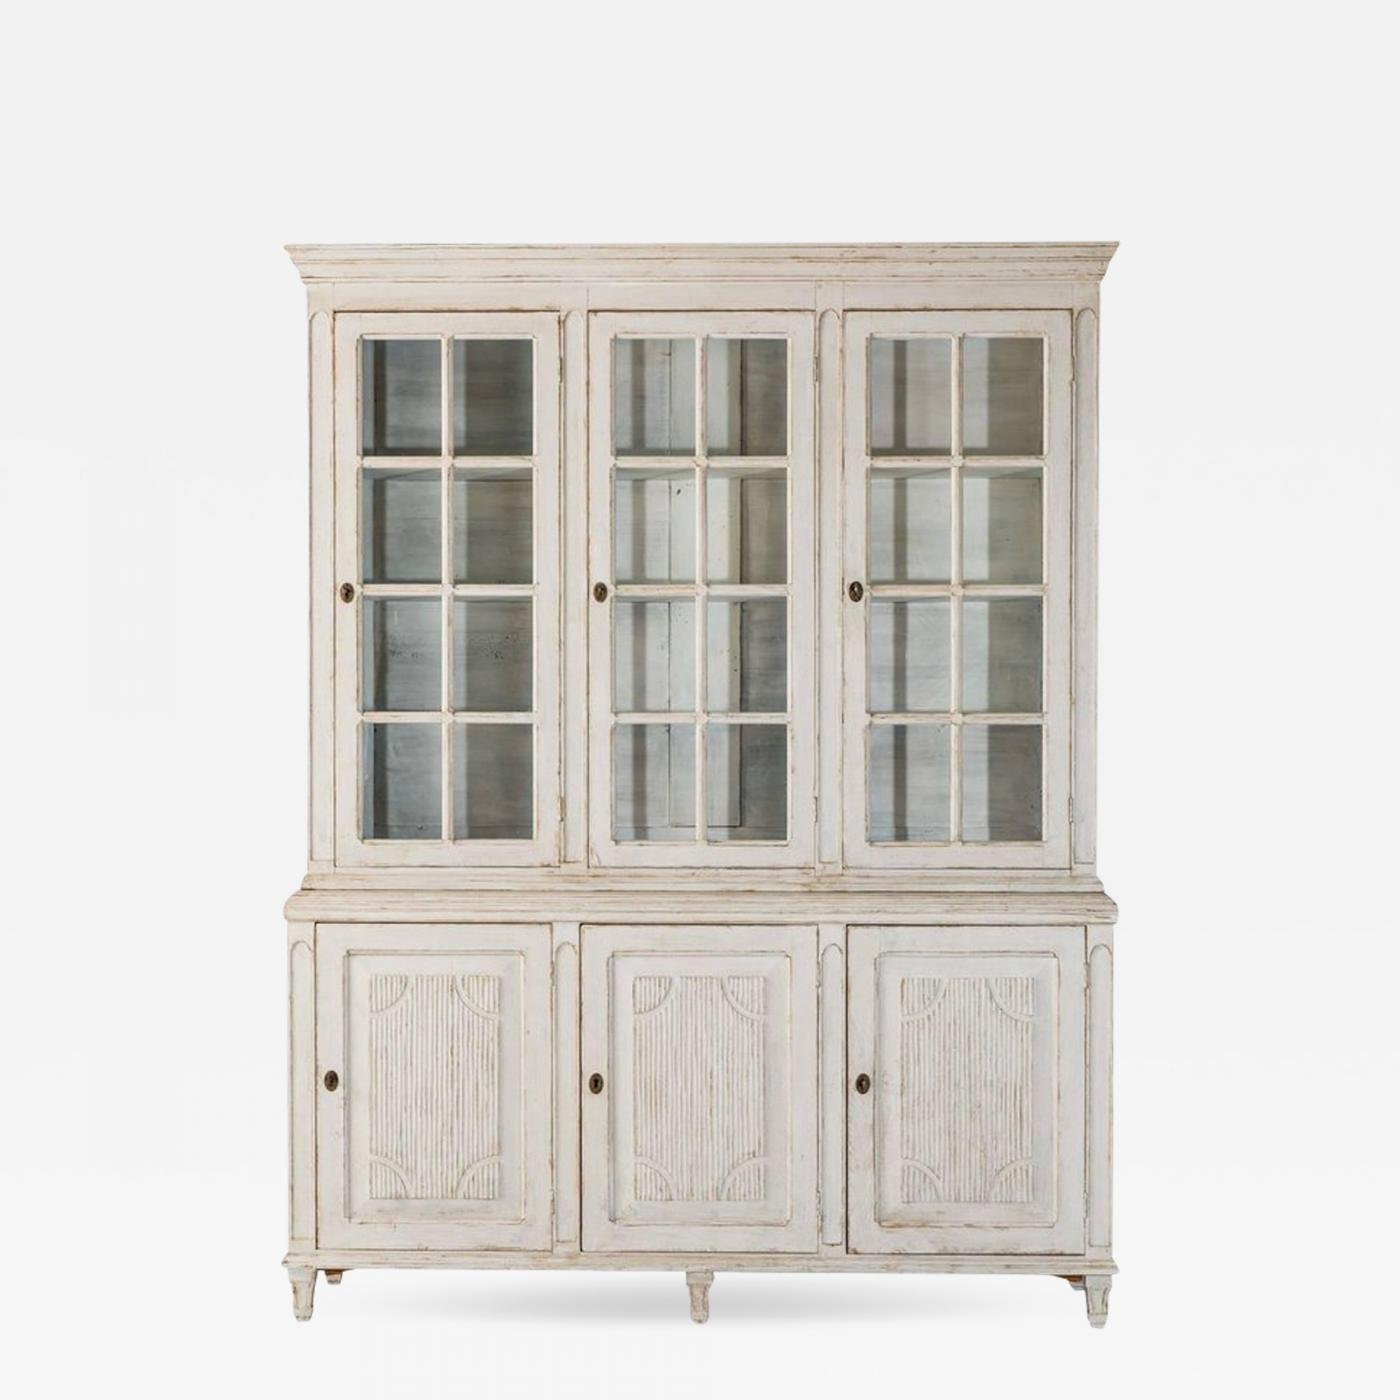 Vitrine Stahl 19th Century Swedish Gustavian Three Door Glass Vitrine Bookcase Cabinet